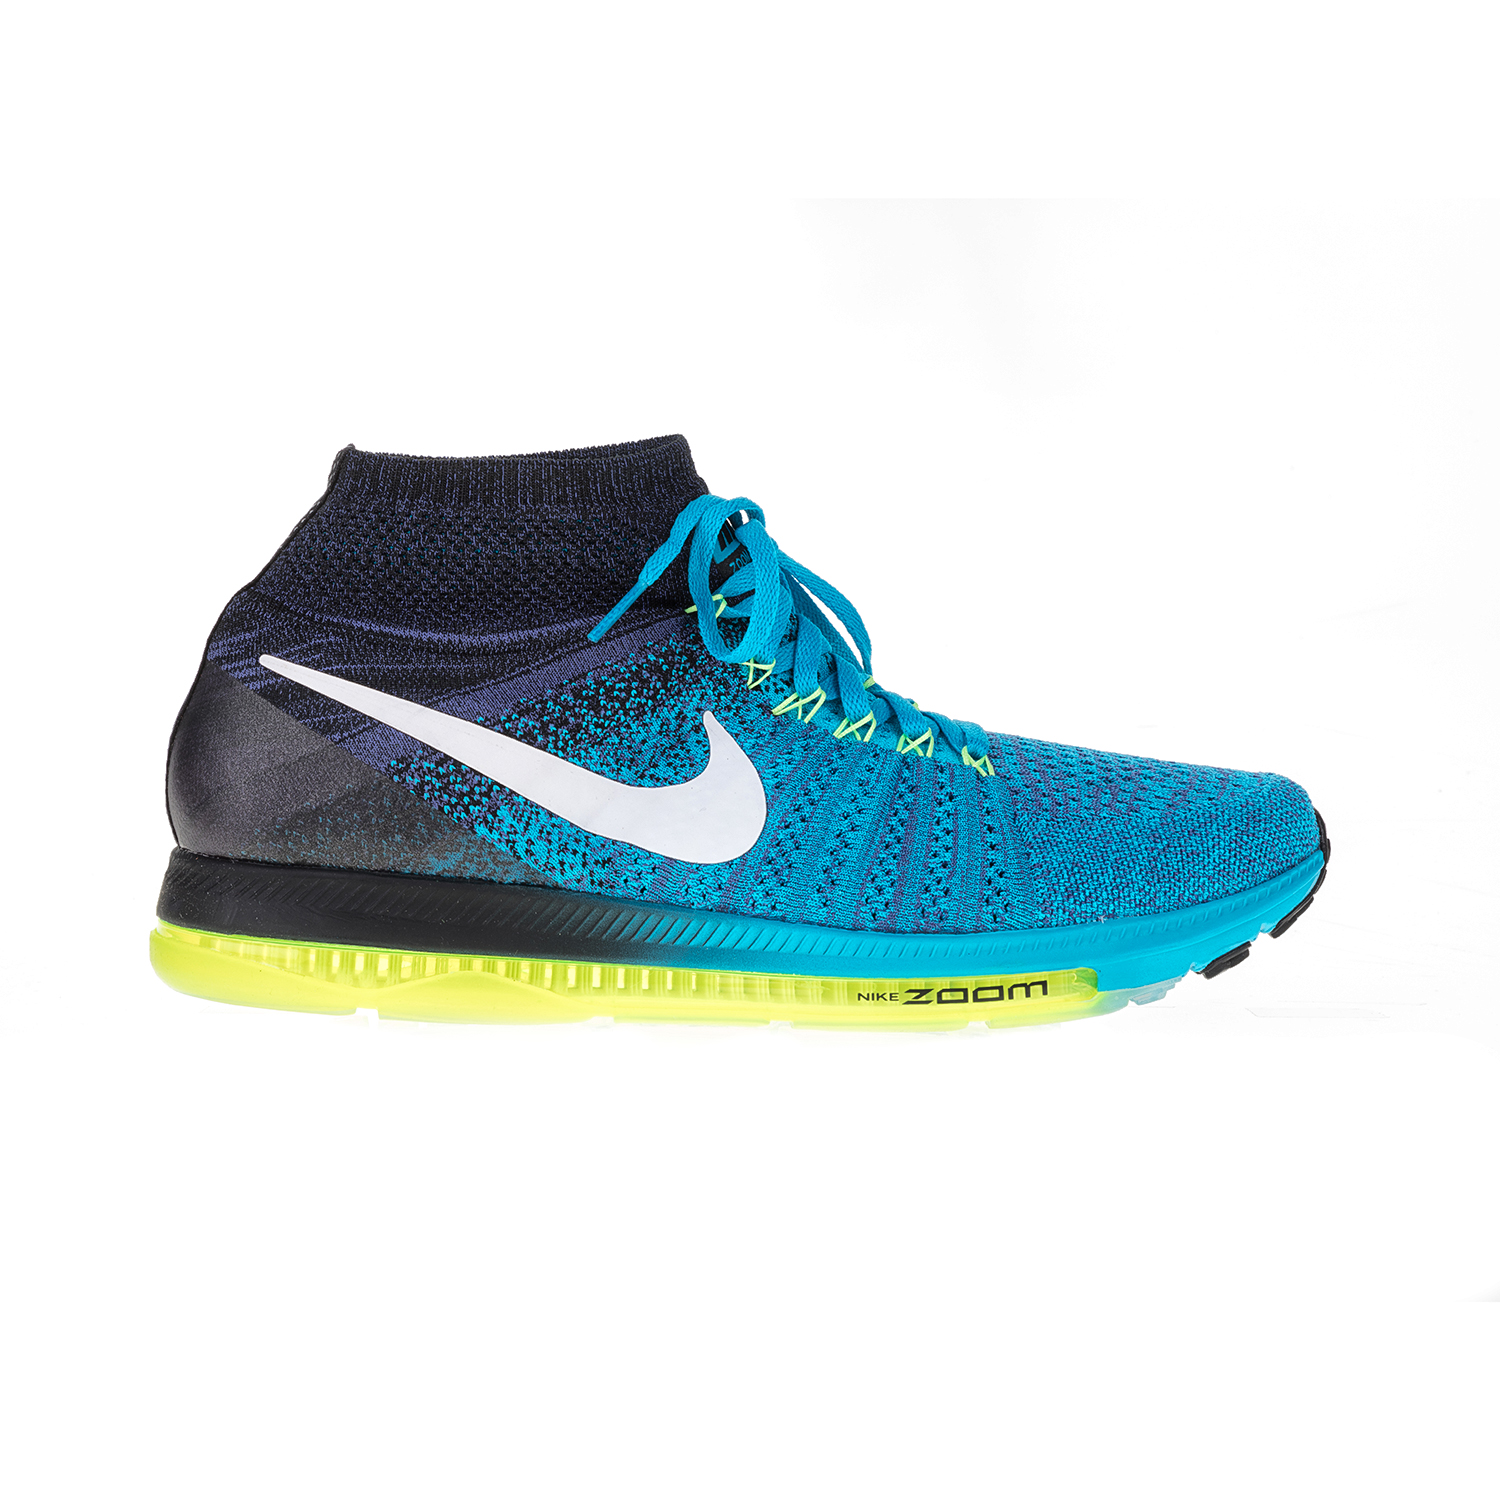 NIKE – Ανδρικά αθλητικά παπούτσια NIKE ZOOM ALL OUT FLYKNIT μπλε